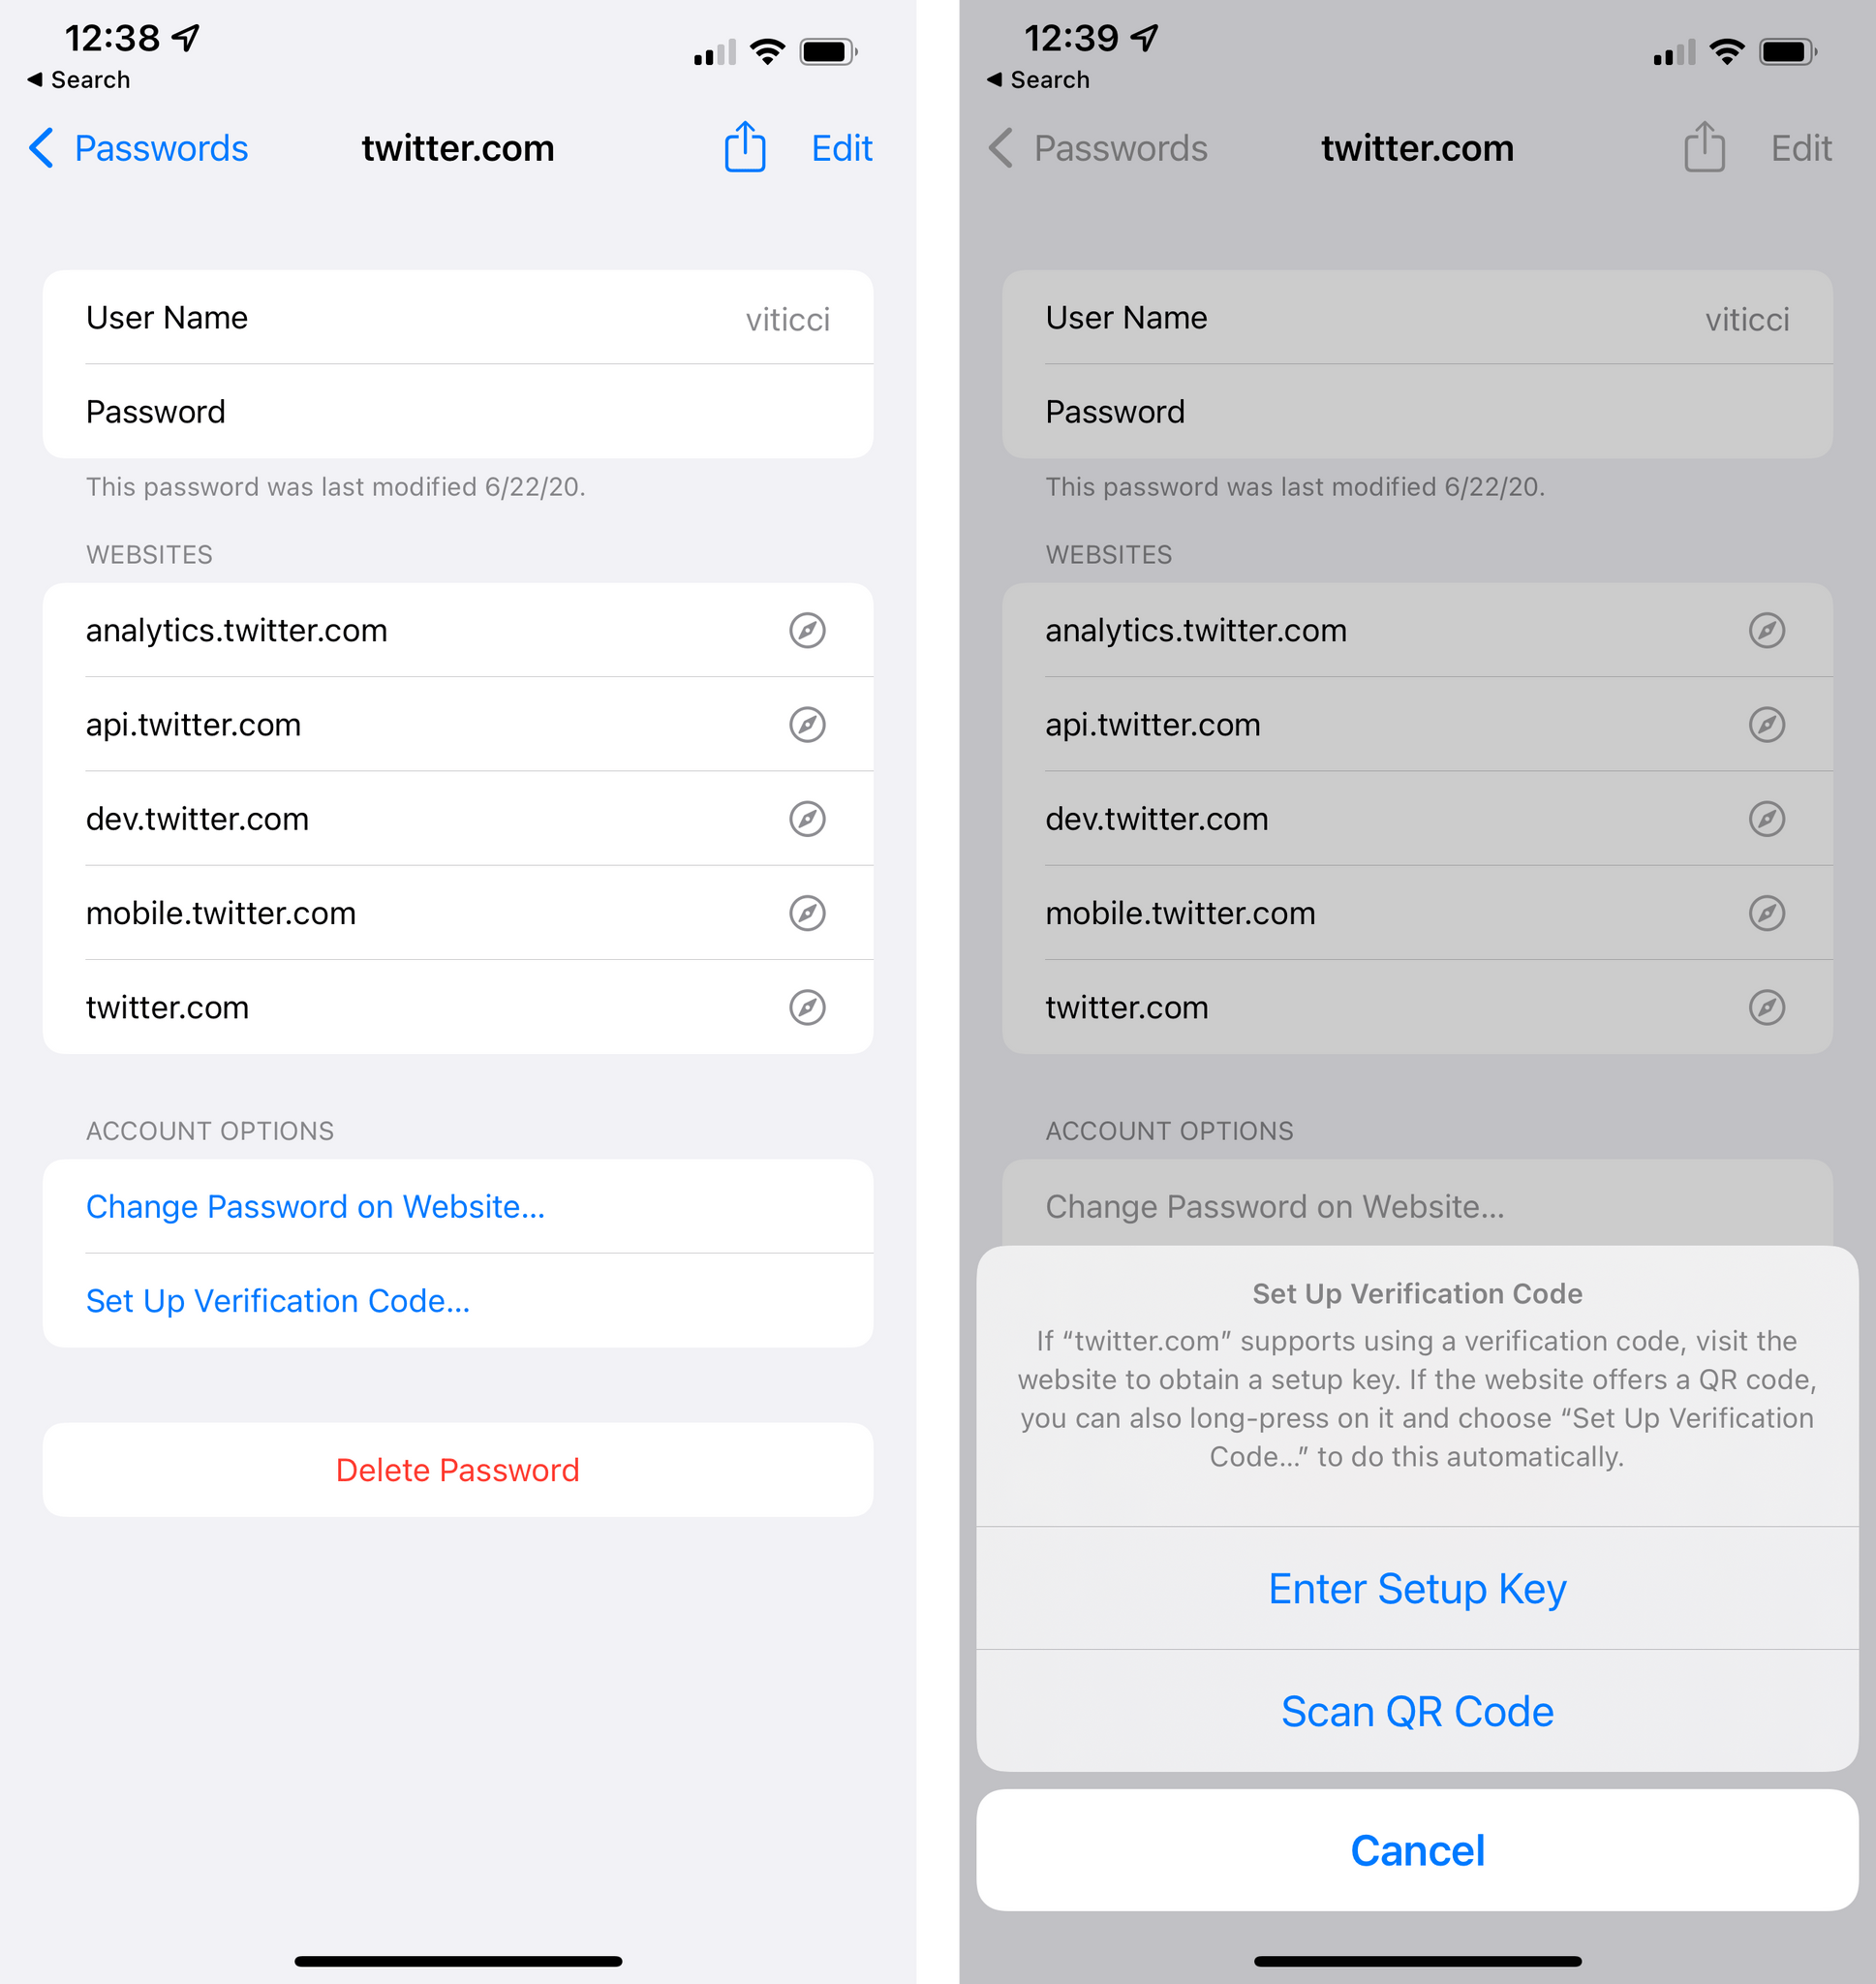 You can now set up verification codes in Passwords.